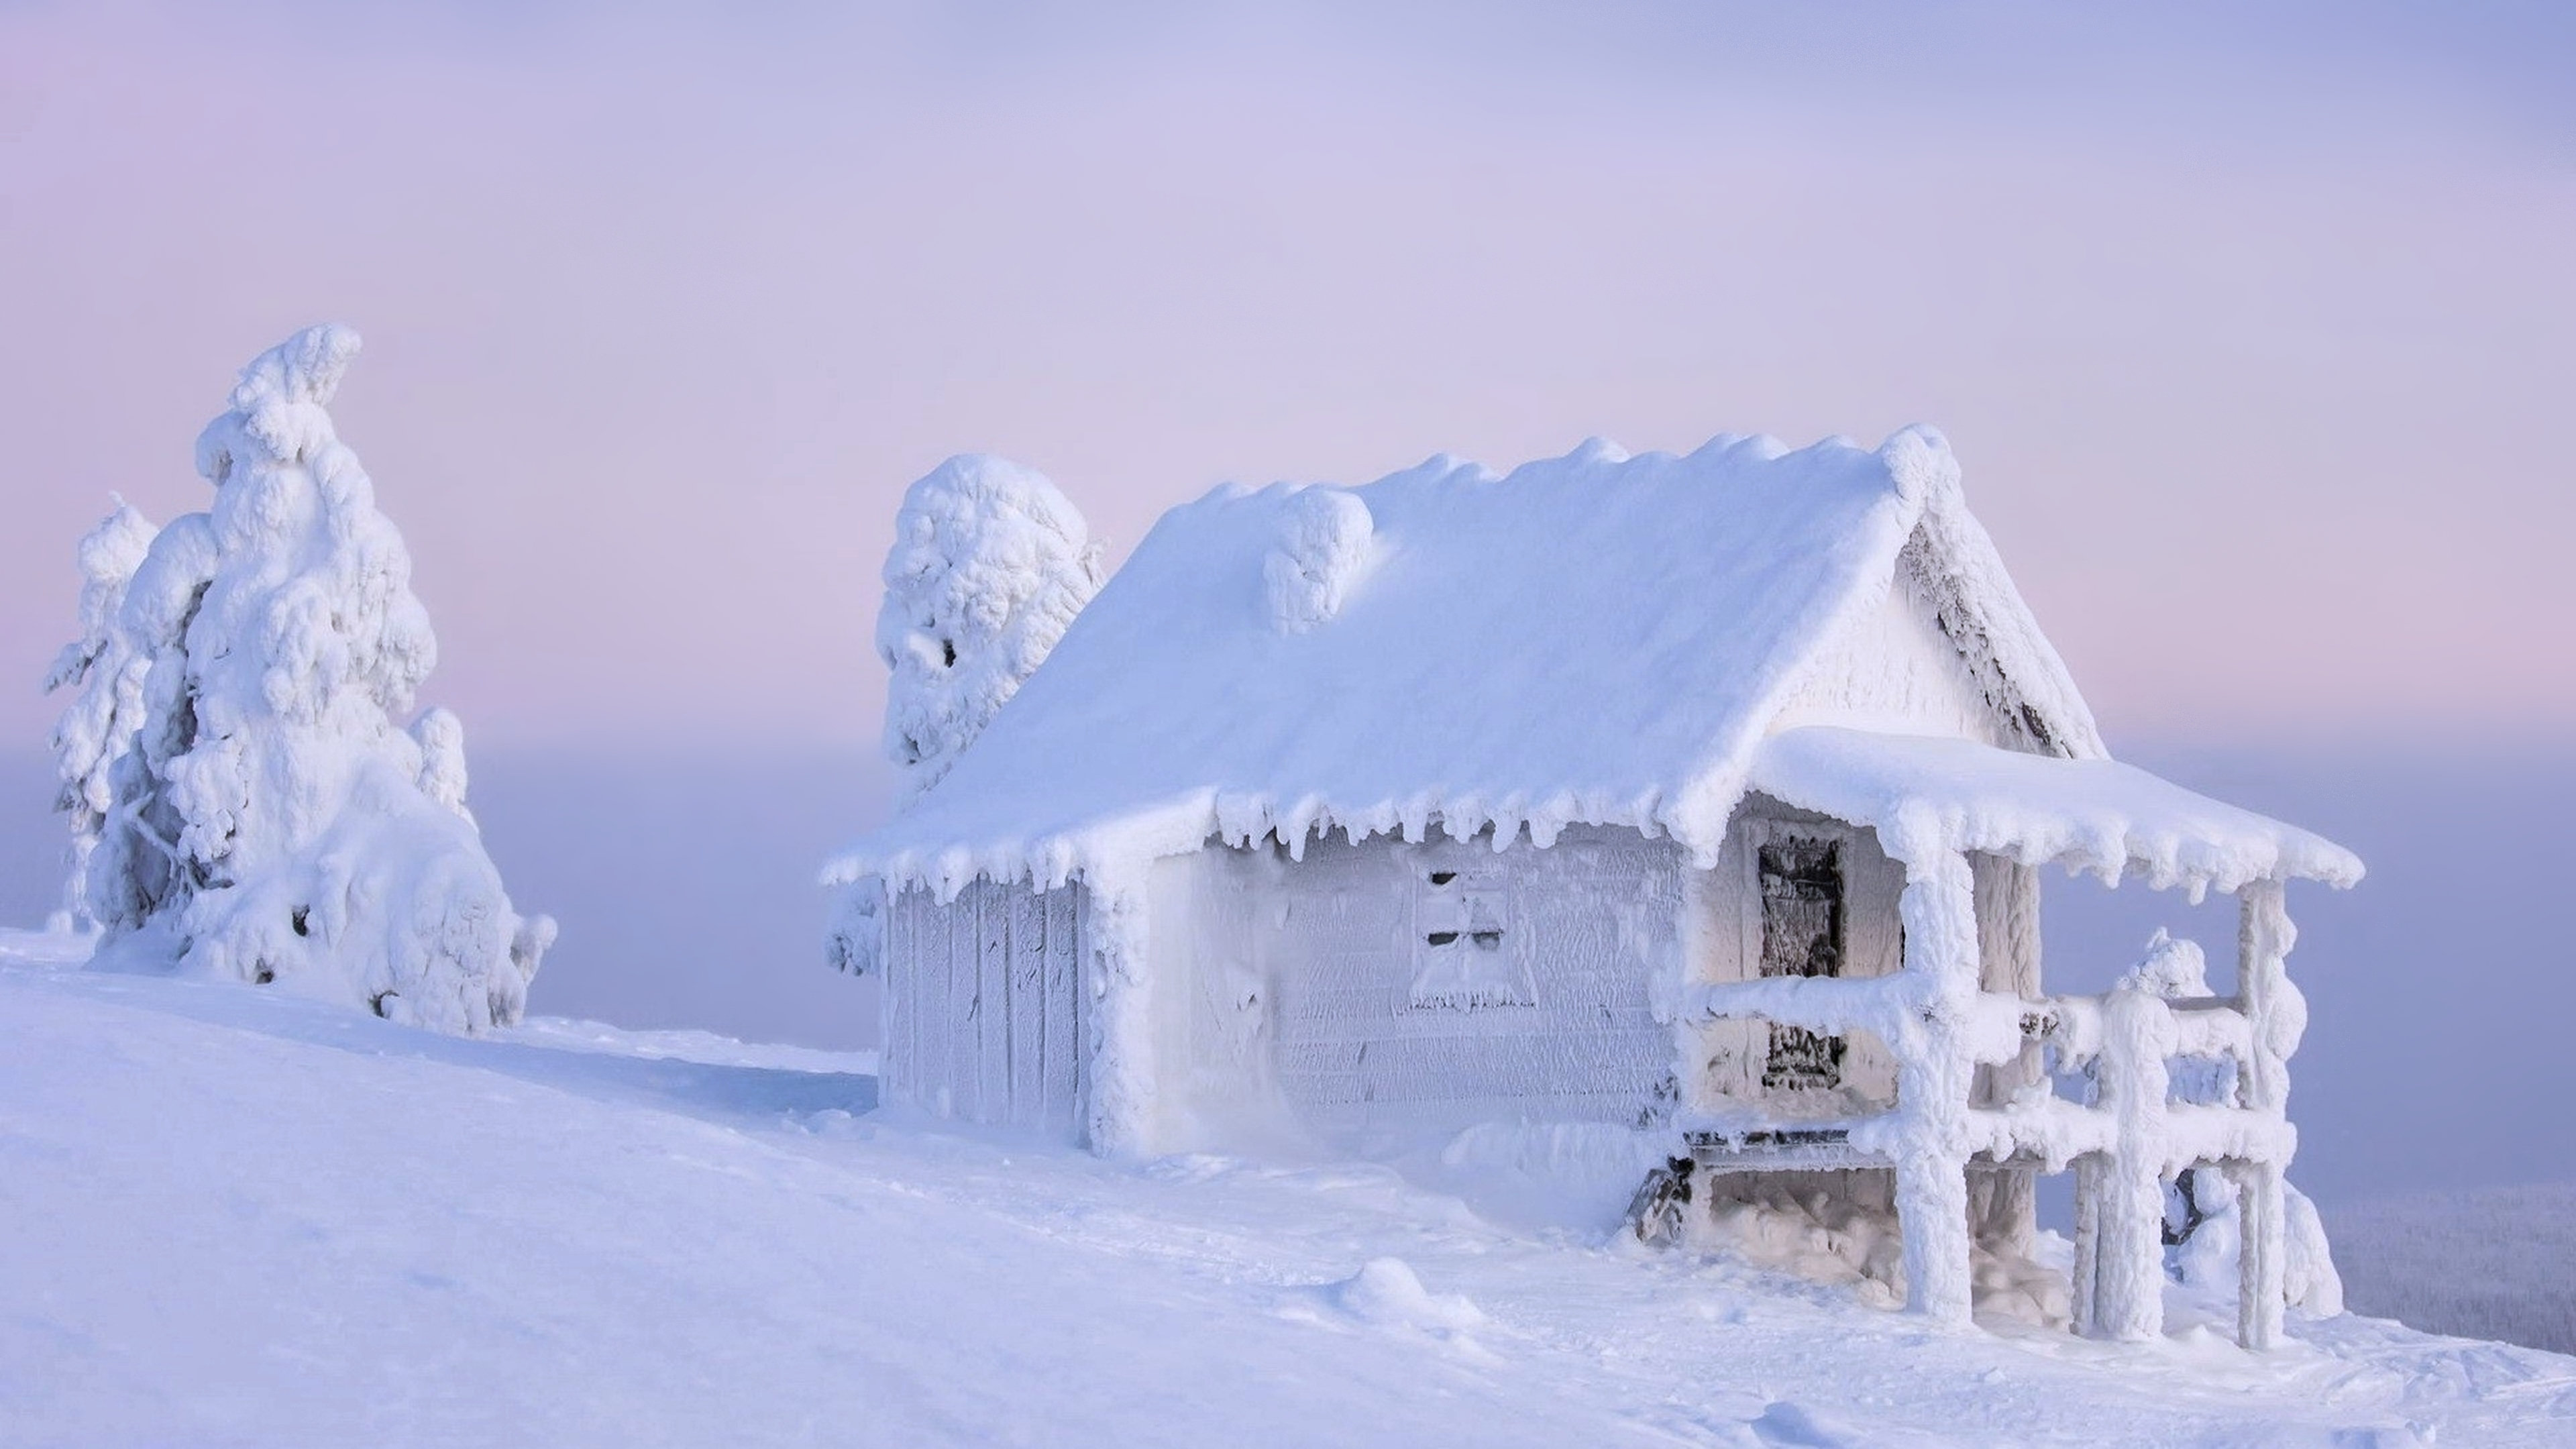 Snow Winter 4k Ultra Hd Wallpaper 3840x2160 340x220